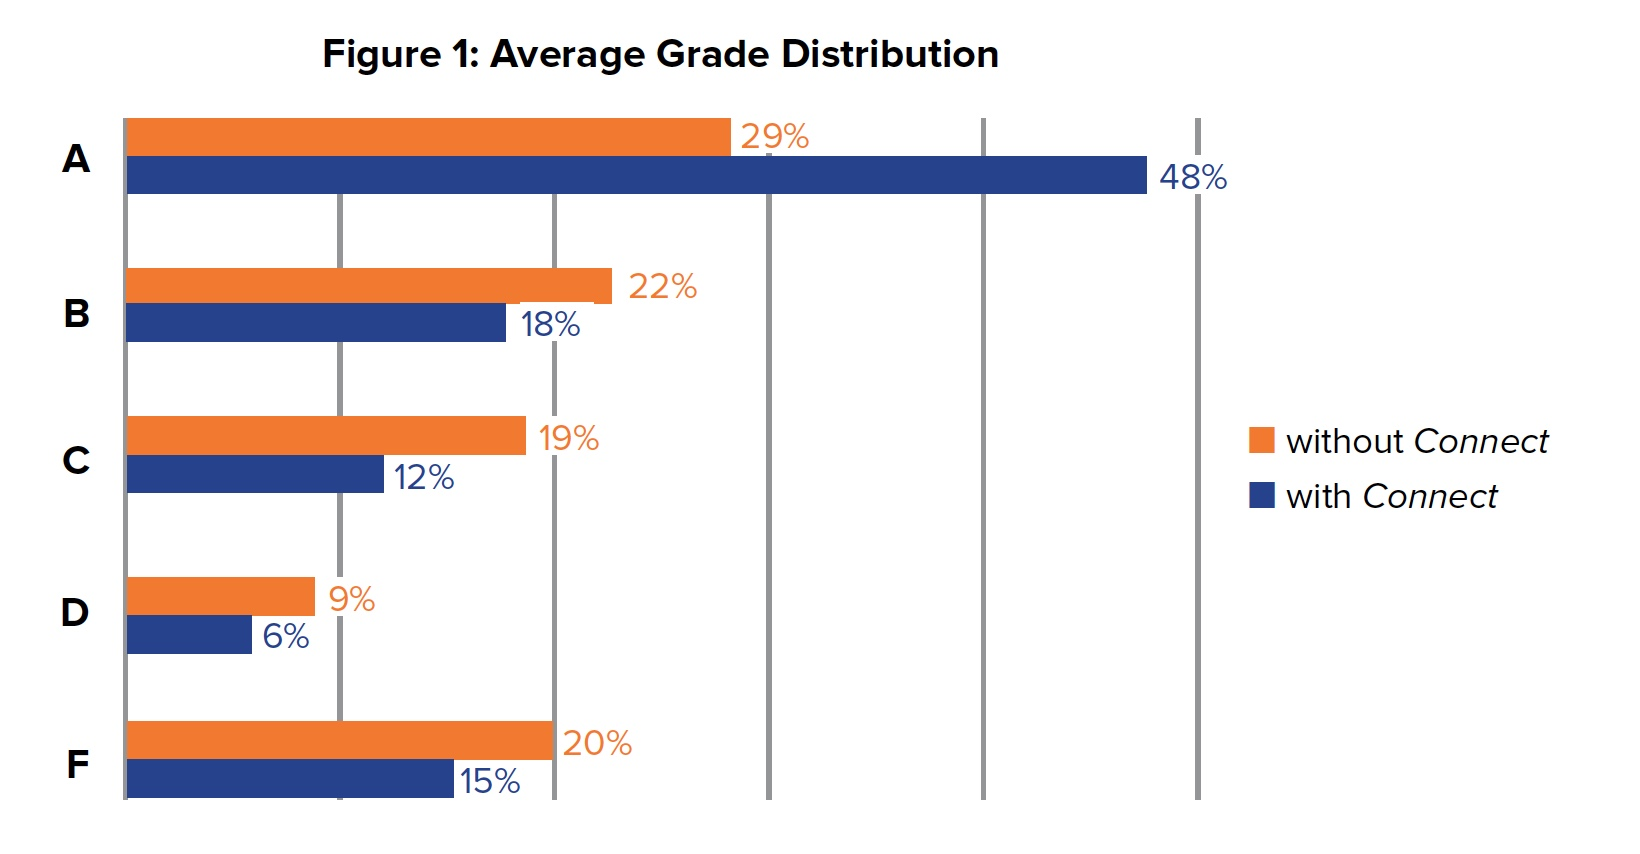 Figure 1: Average Grade Distribution